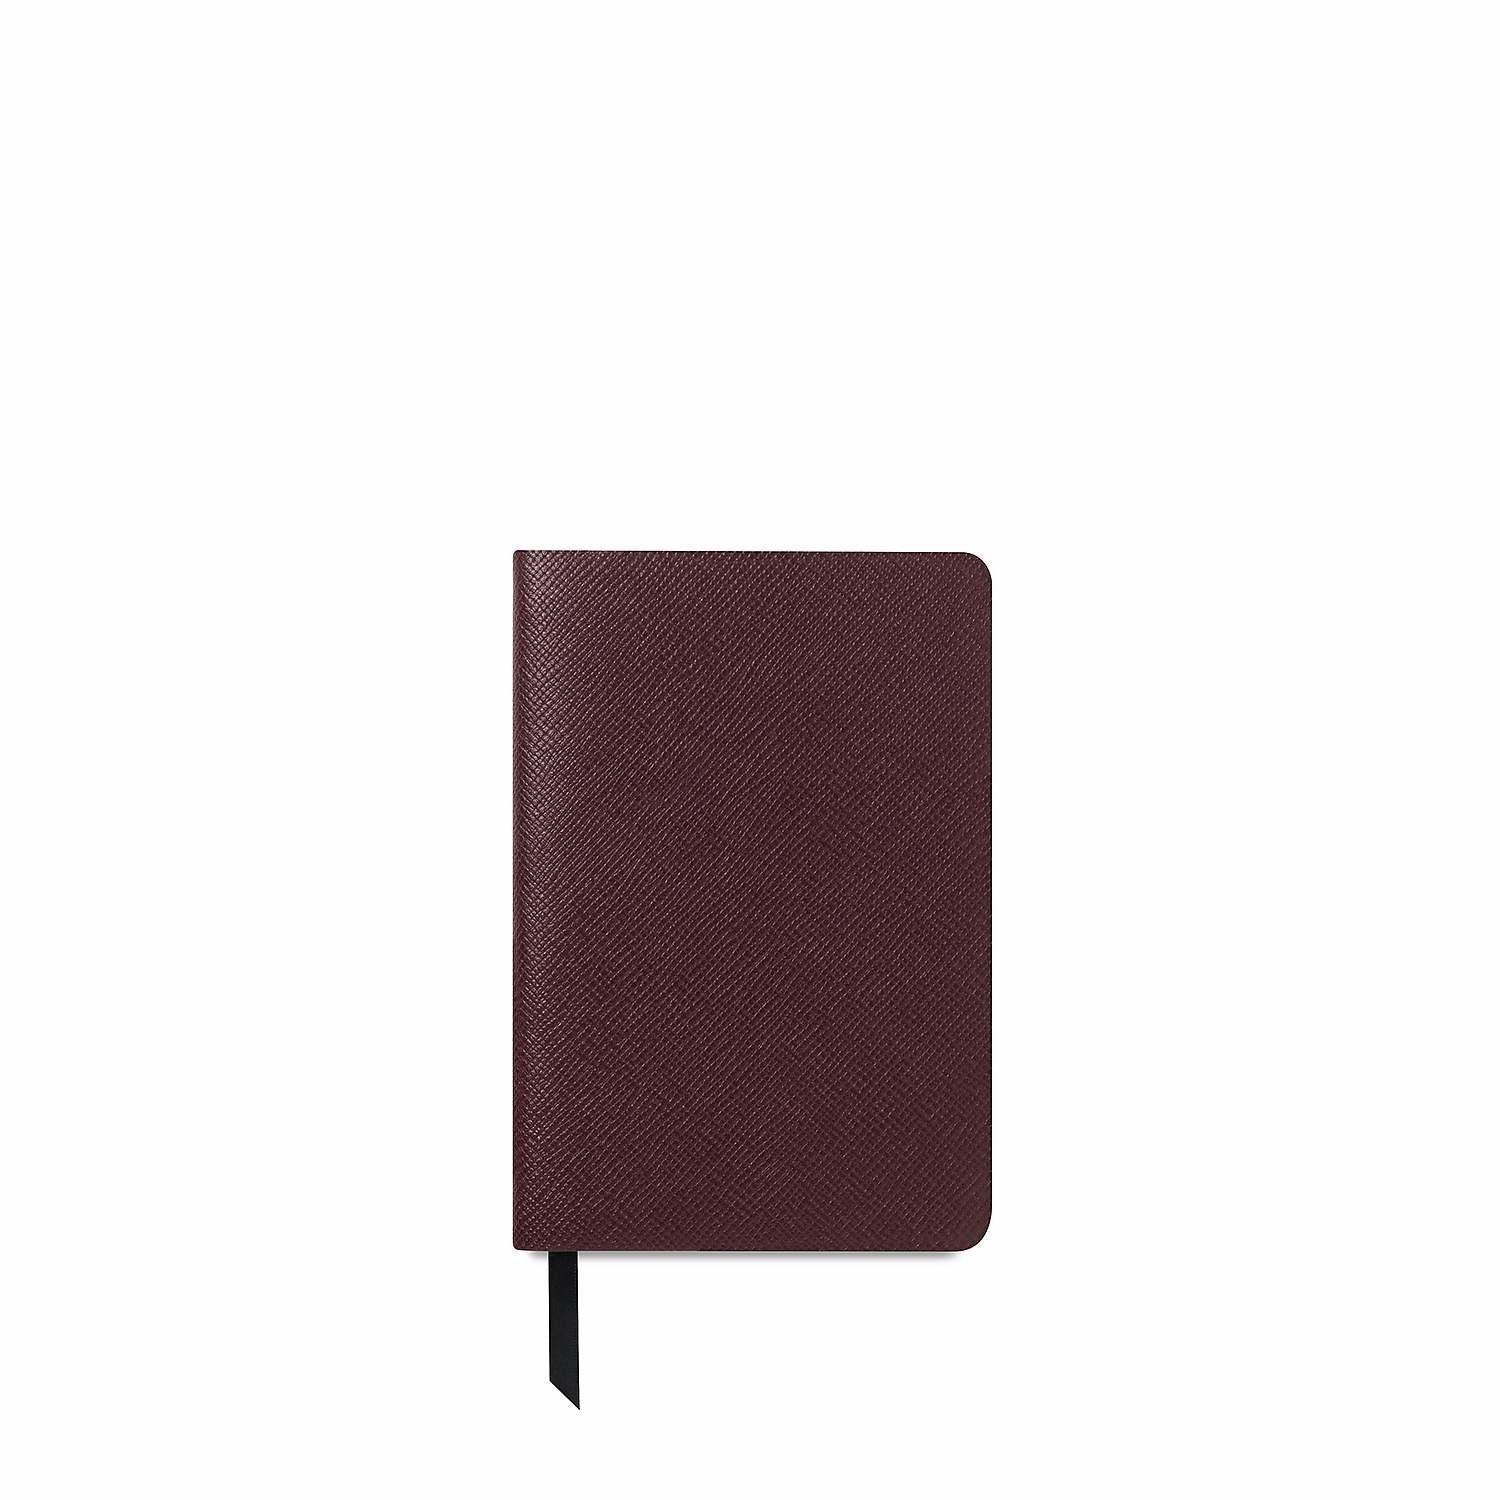 The A6 Notebook - Oxblood Saffiano